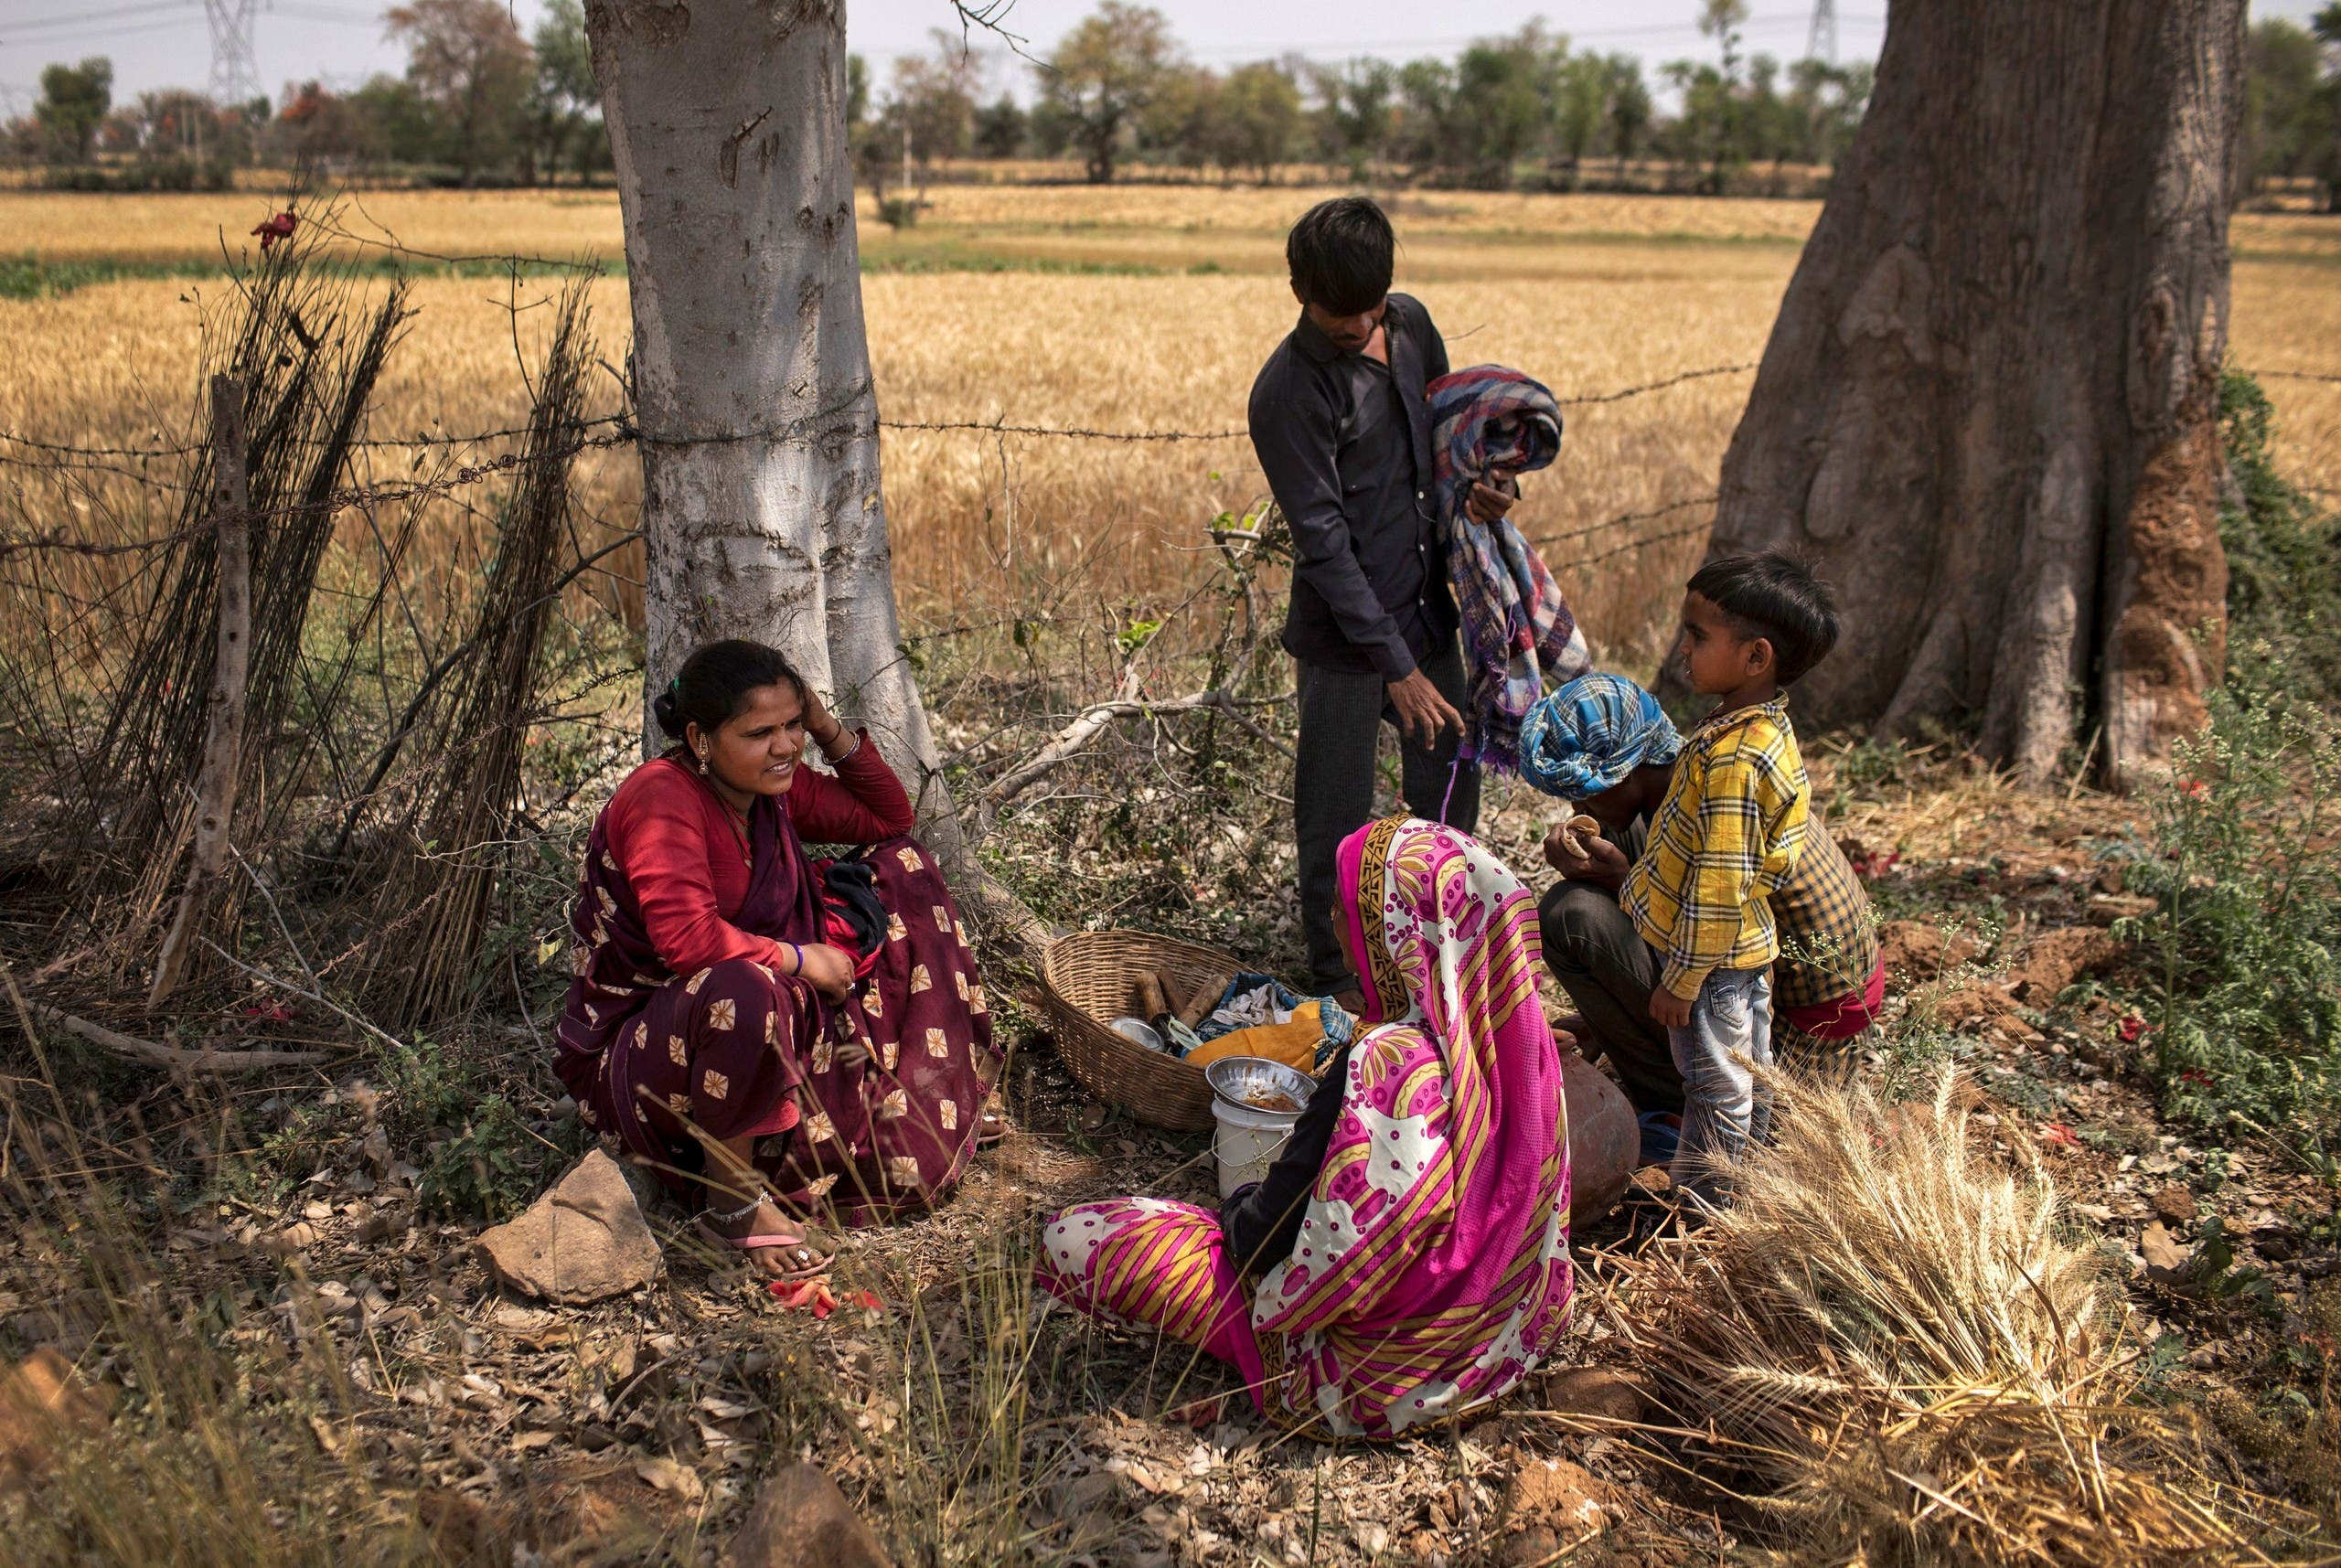 Dayaram Kushwaha eats lunch with his family as they take a break from harvesting wheat, during nationwide lockdown in India to slow the spread of the coronavirus, in Jugyai village in the central state of Madhya Pradesh, India, on April 8, 2020. (Reuters)